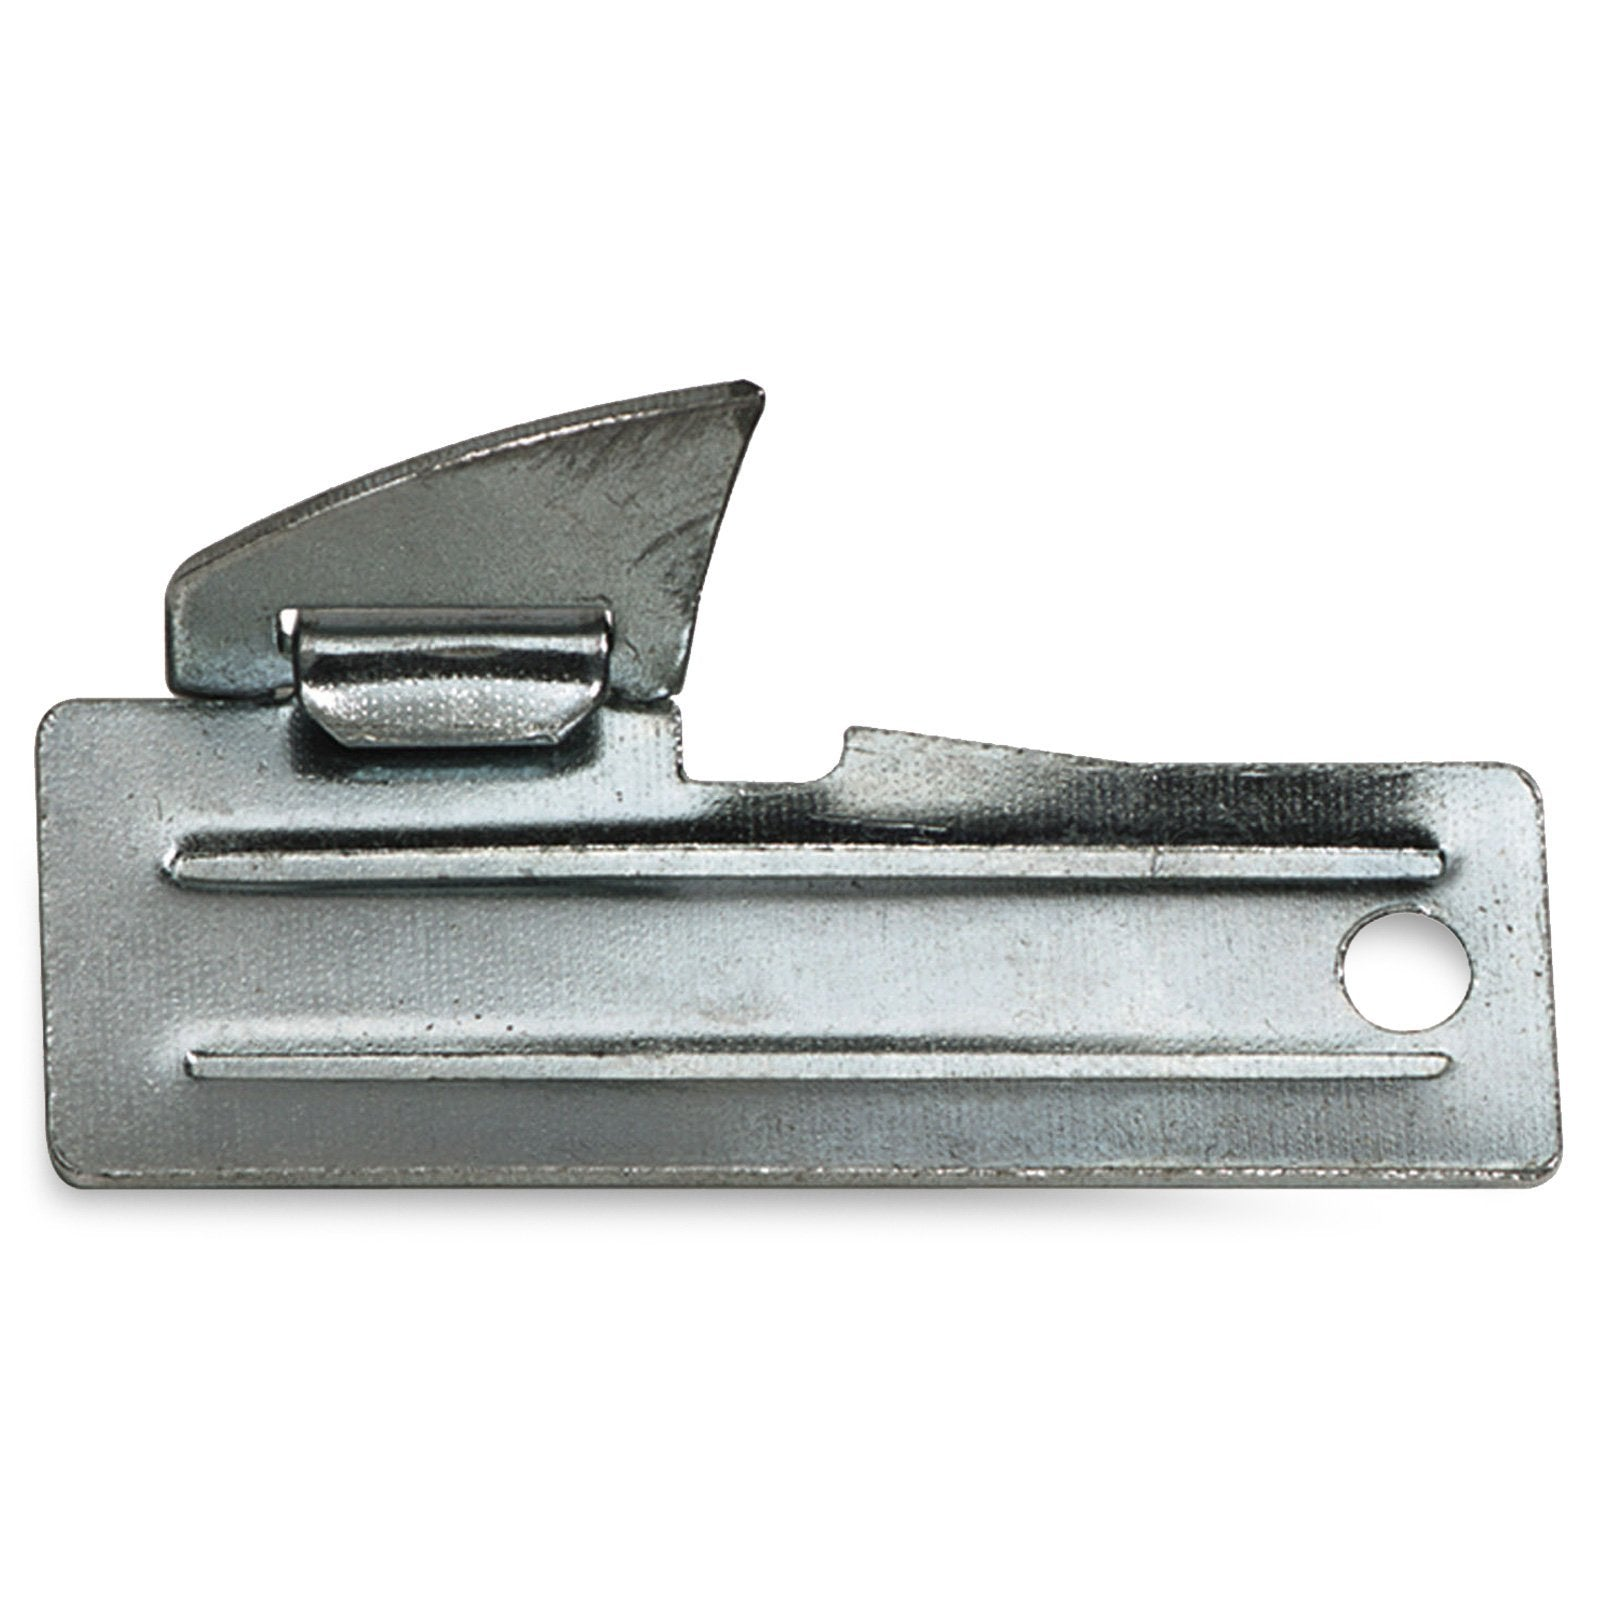 ROTHCO P-51 CAN OPENER | Classic Field-Tested Design, 5cm